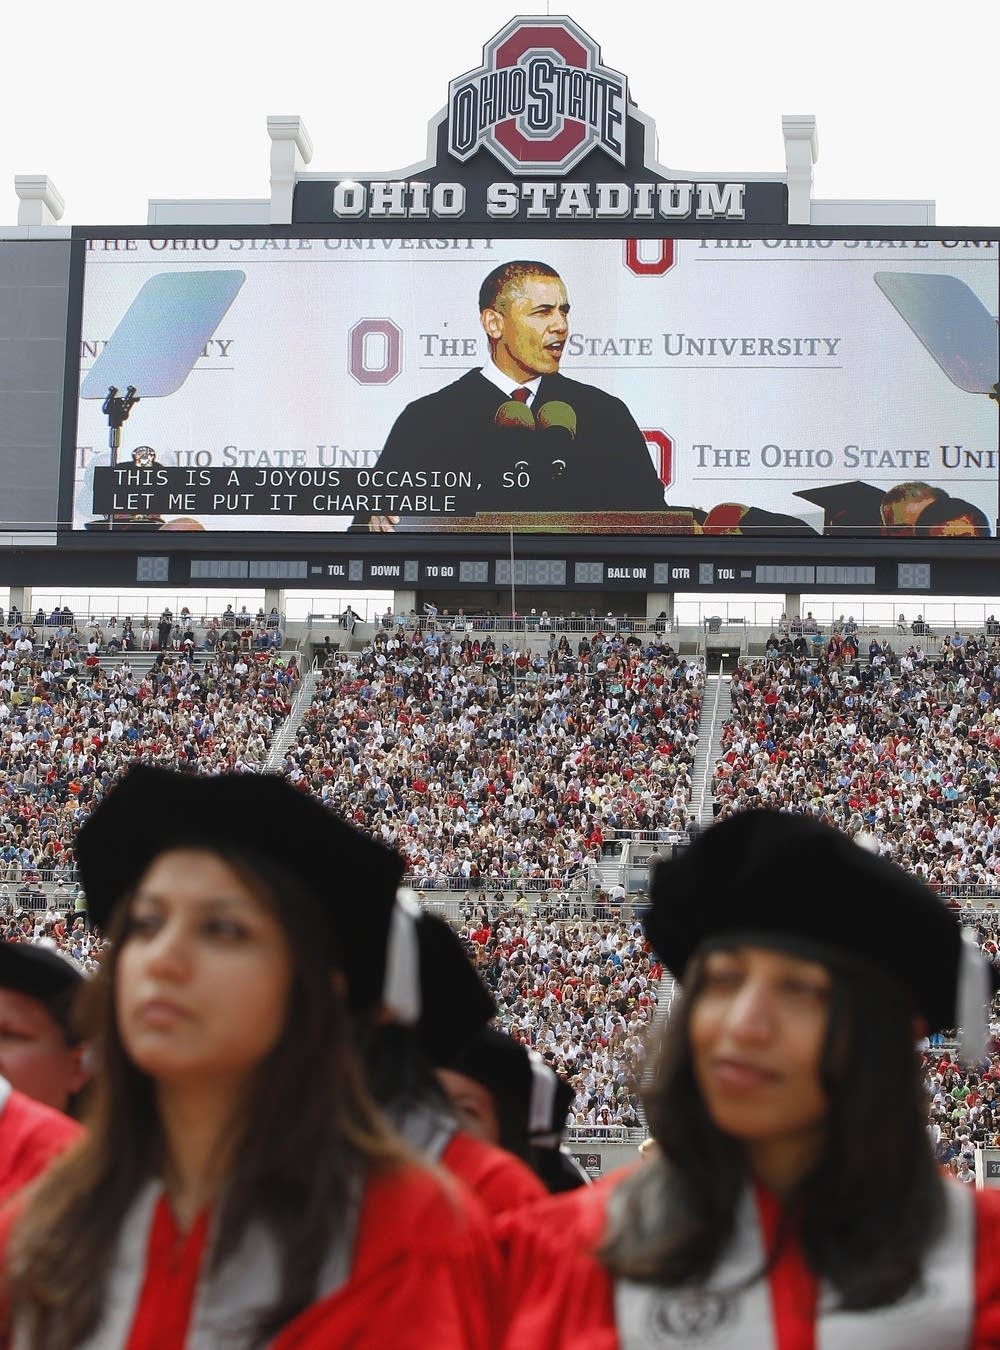 Obama on the video screen